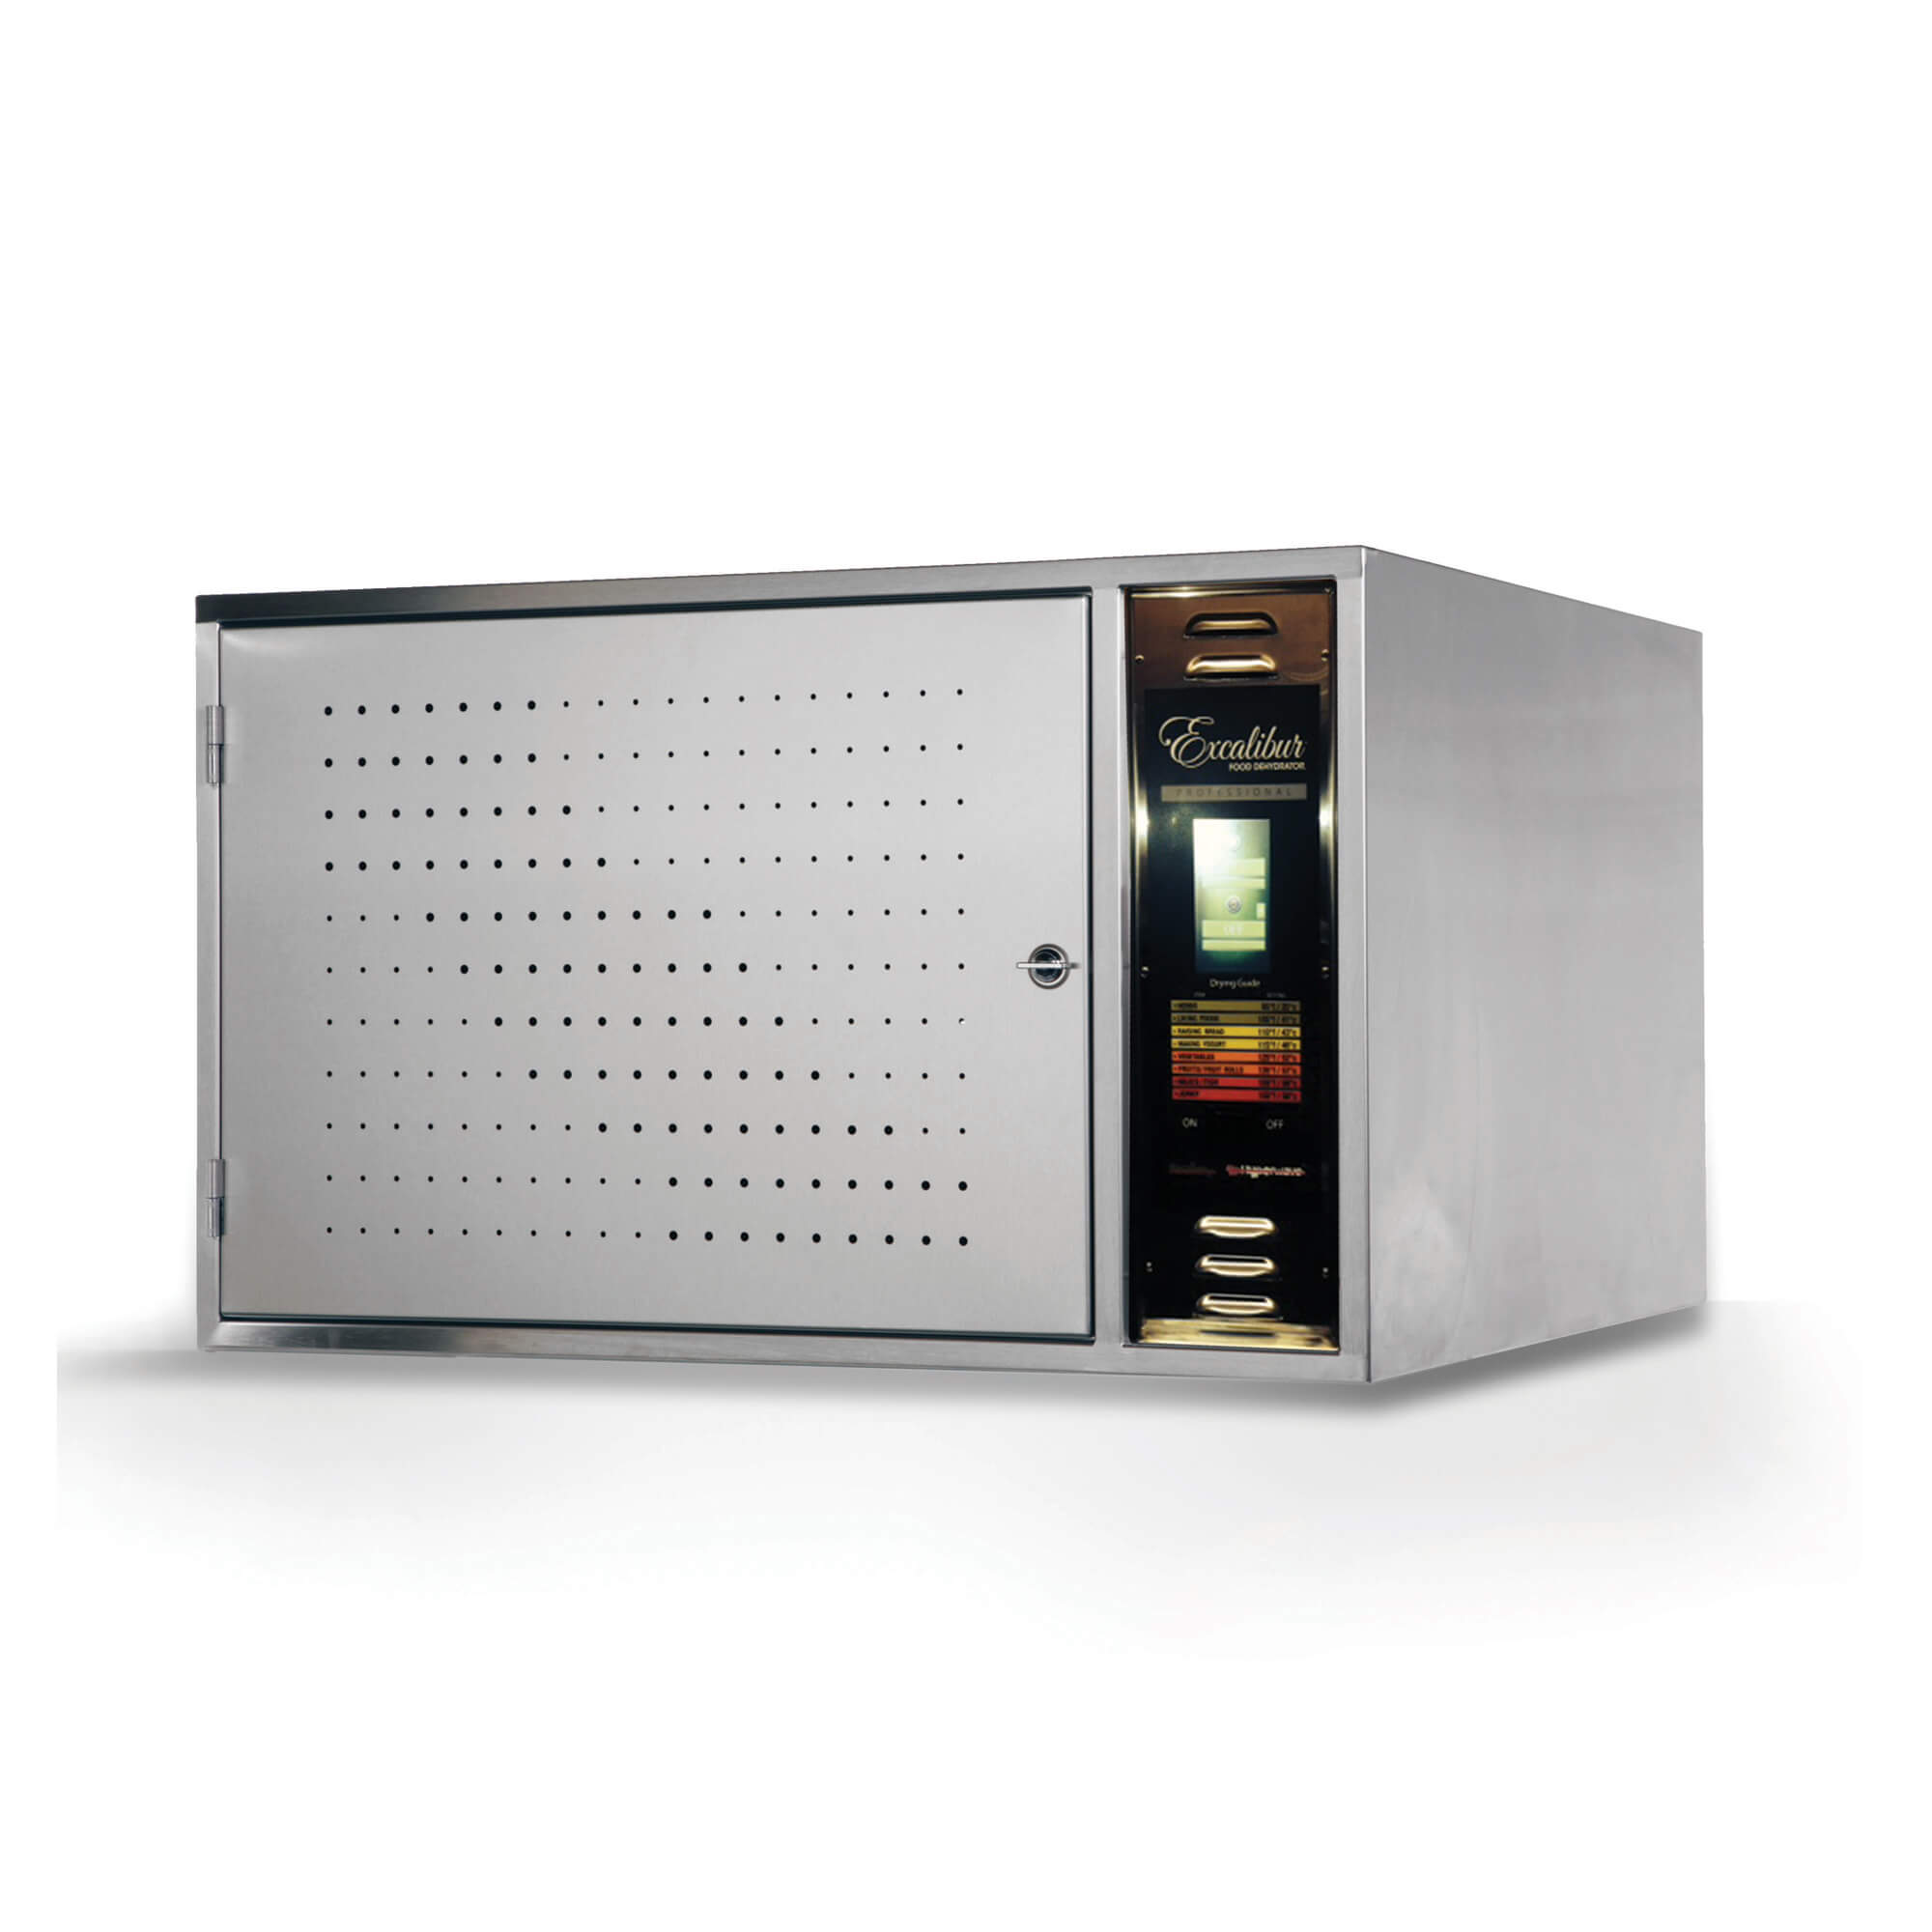 Excalibur COMM1 12 tray commercial dehydrator with door closed.